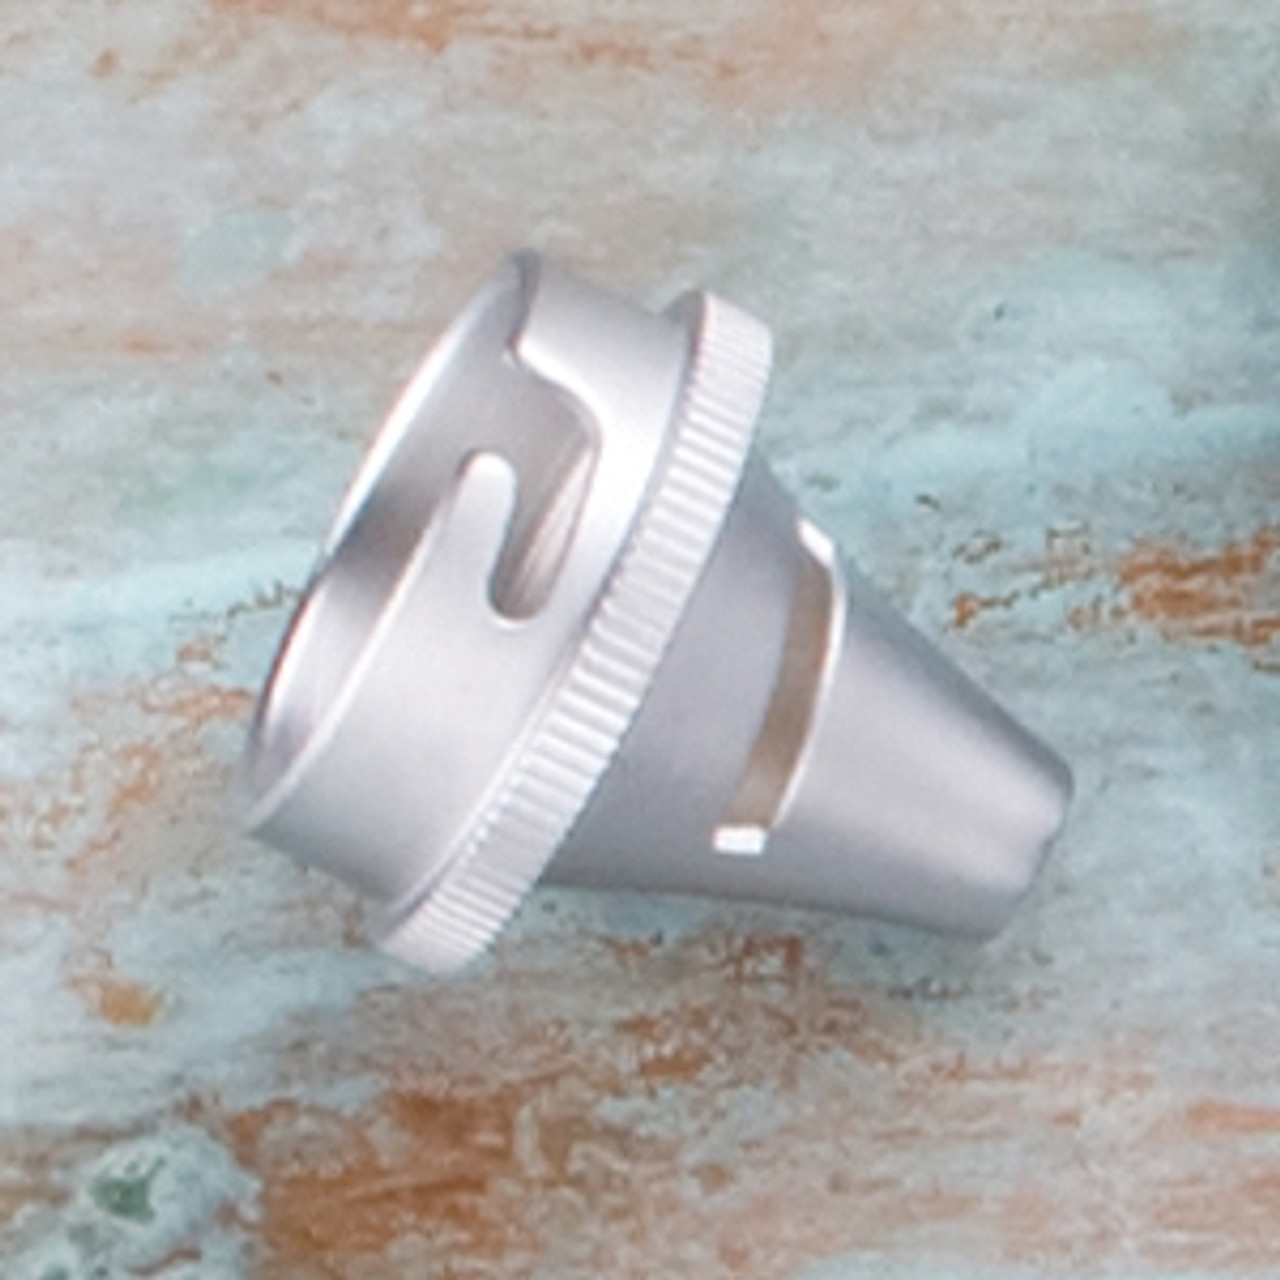 ADC 5211AD Adapter for Disposable Specula